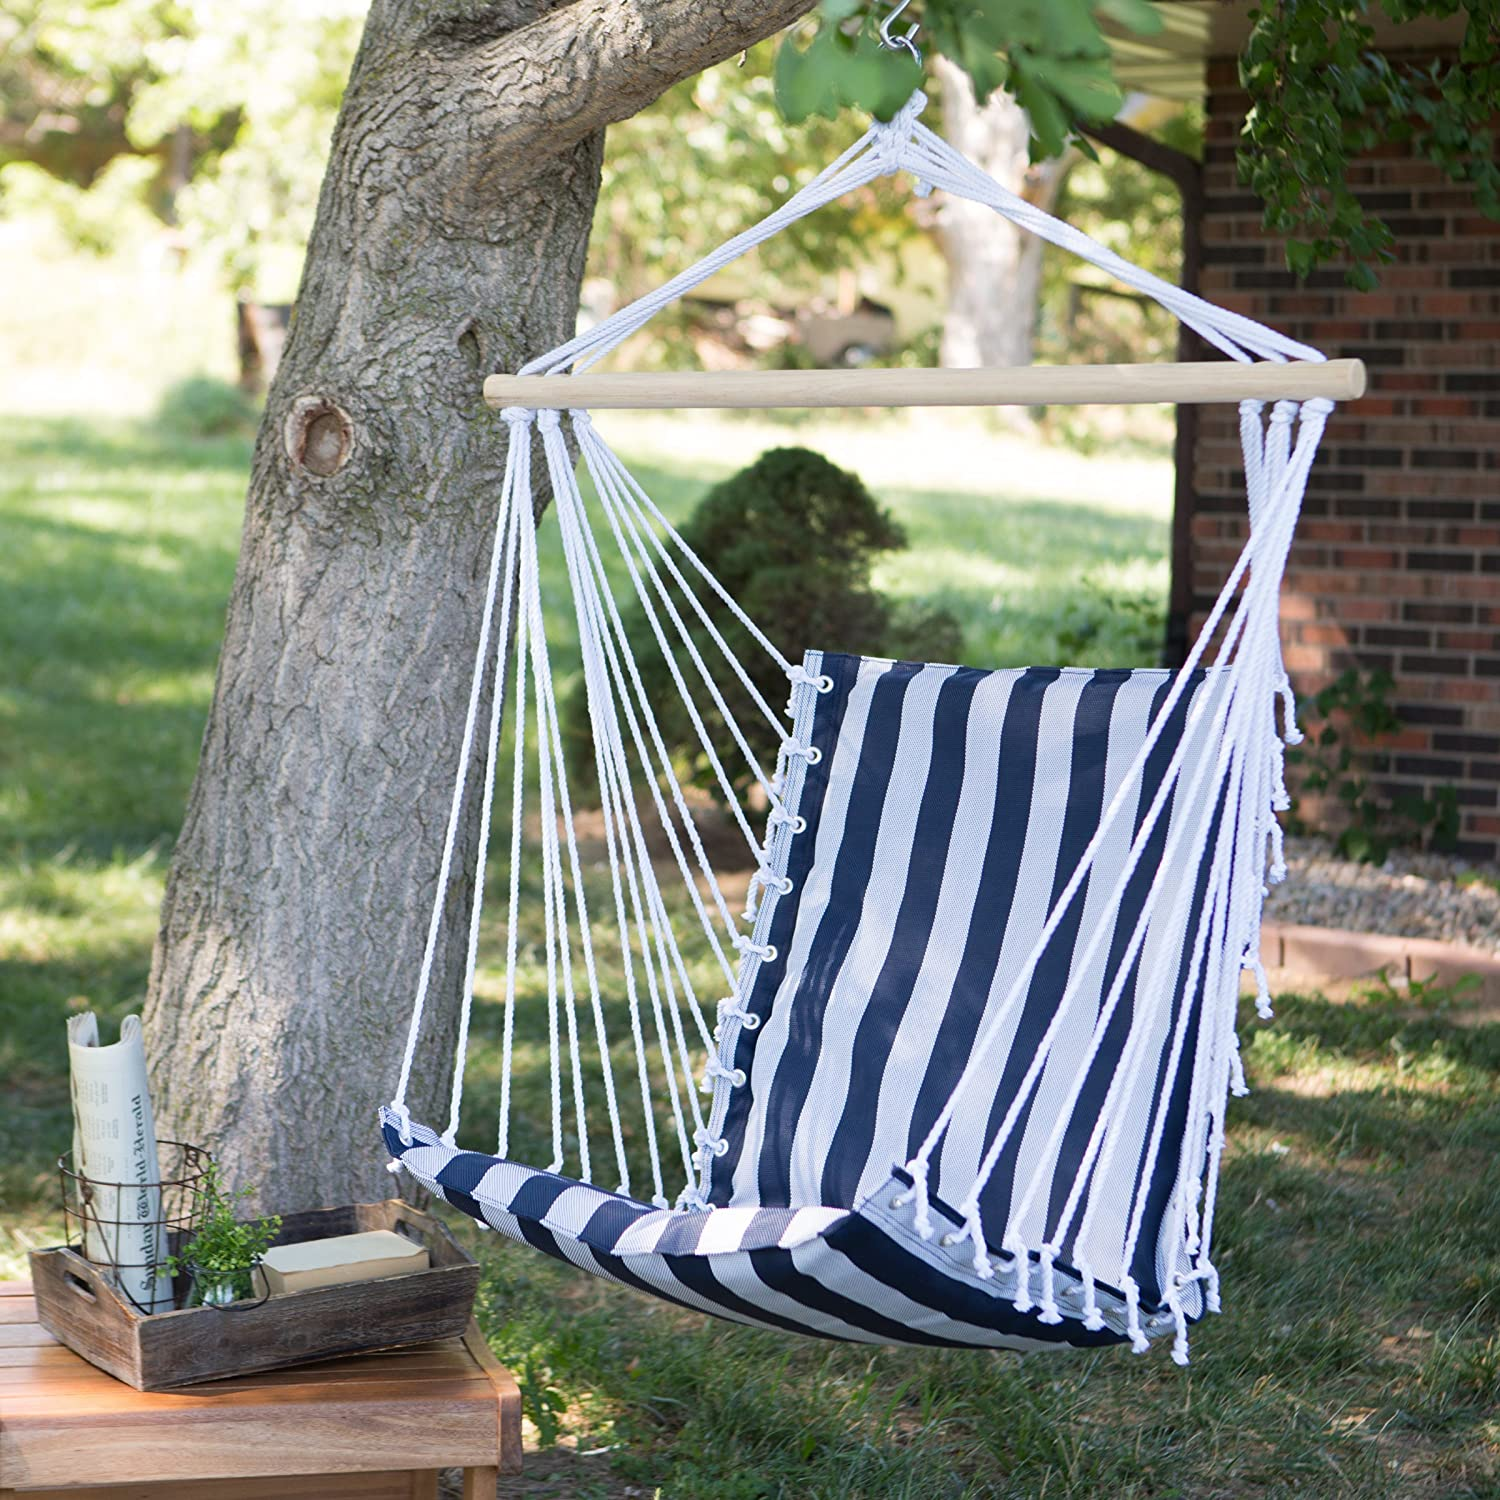 The Ultimate Padded Mesh Hanging Chair / Hammock   Navy Stripes With  Durable Wood Spreader Bar And Hanging Ring